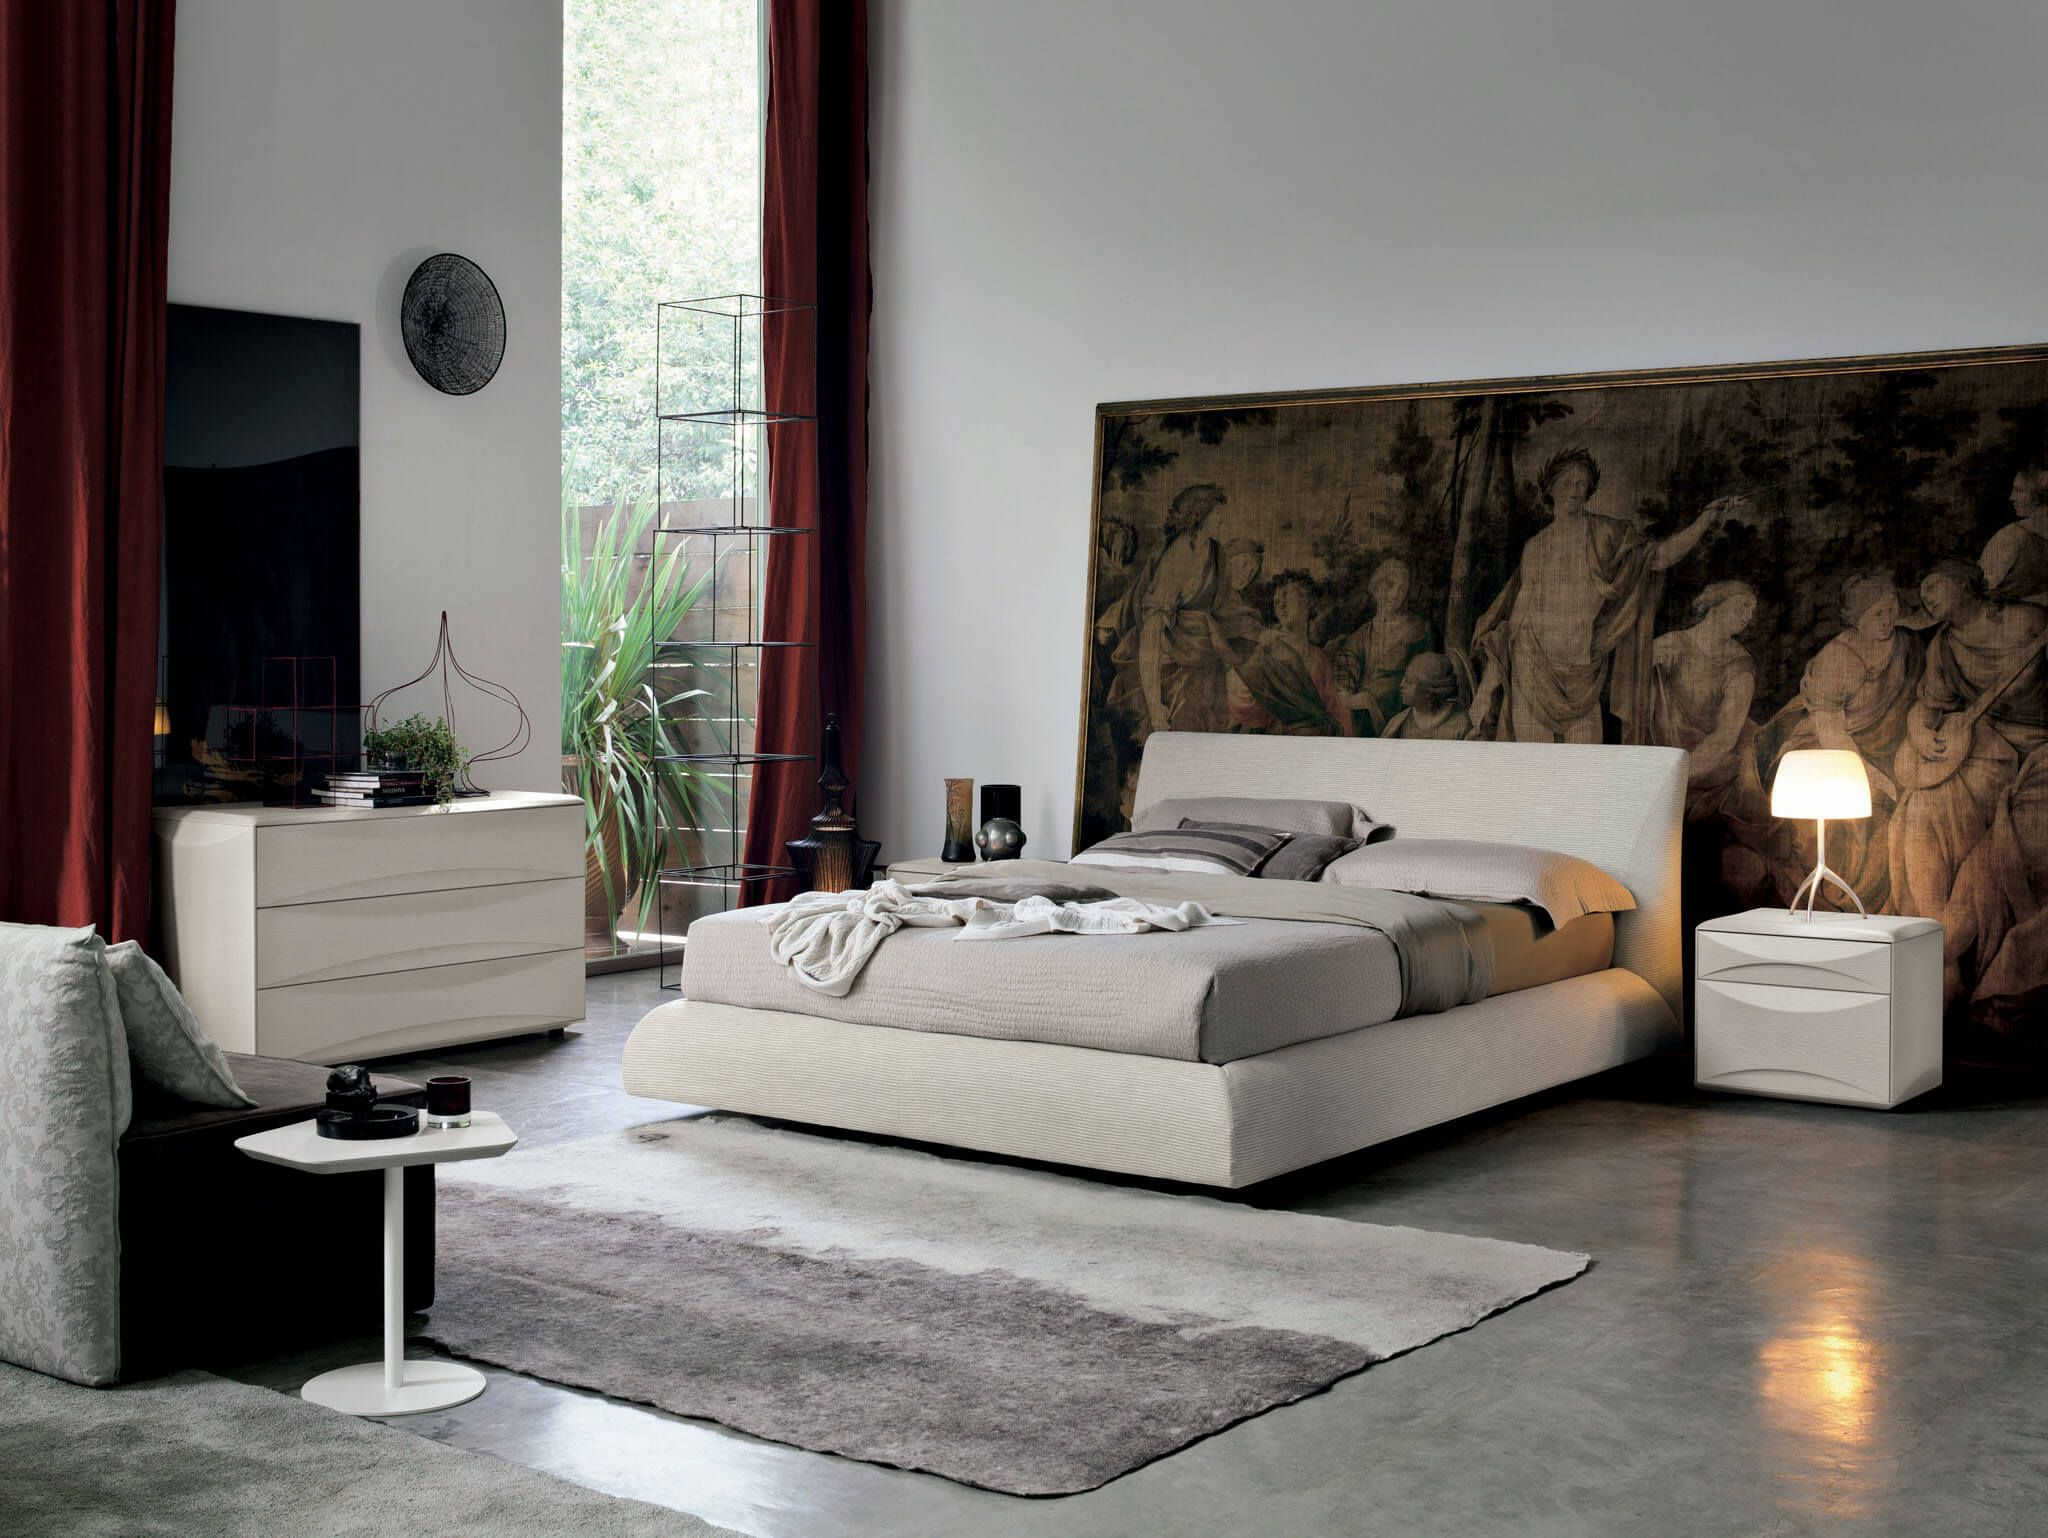 Eros by Tomasella. Available at Archisesto. #bed #bedroom #homeinspo ...